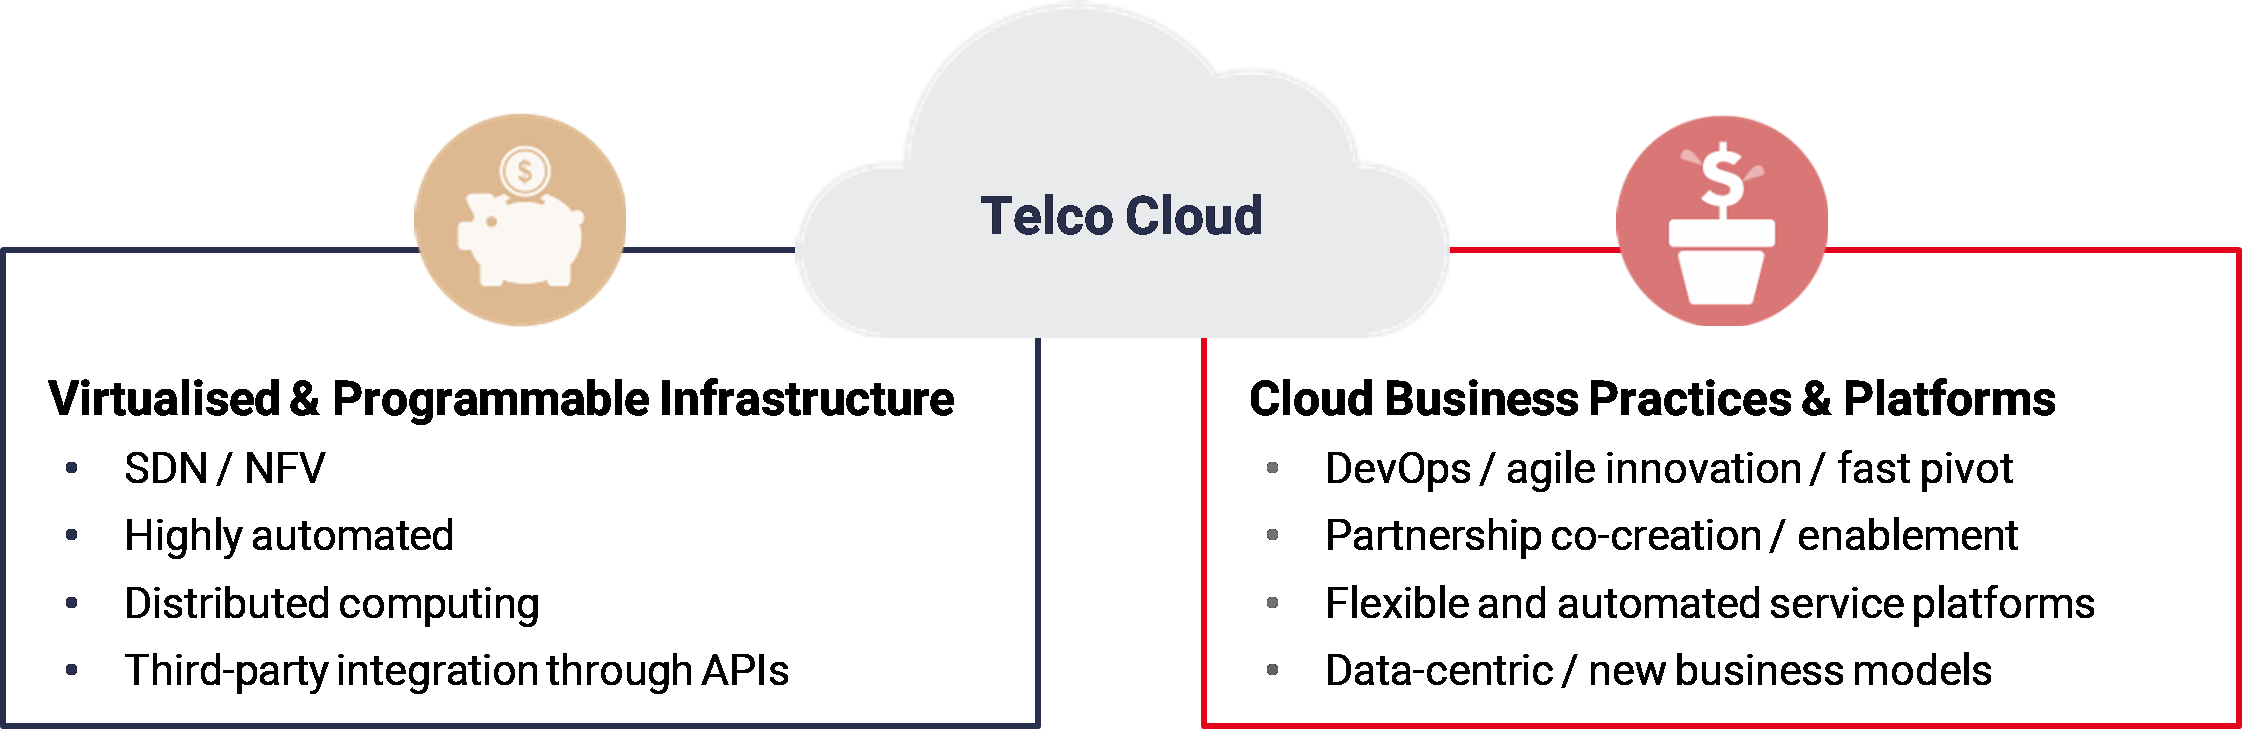 Telco cloud: Virtualised & programmable infrastructure together with cloud business practices